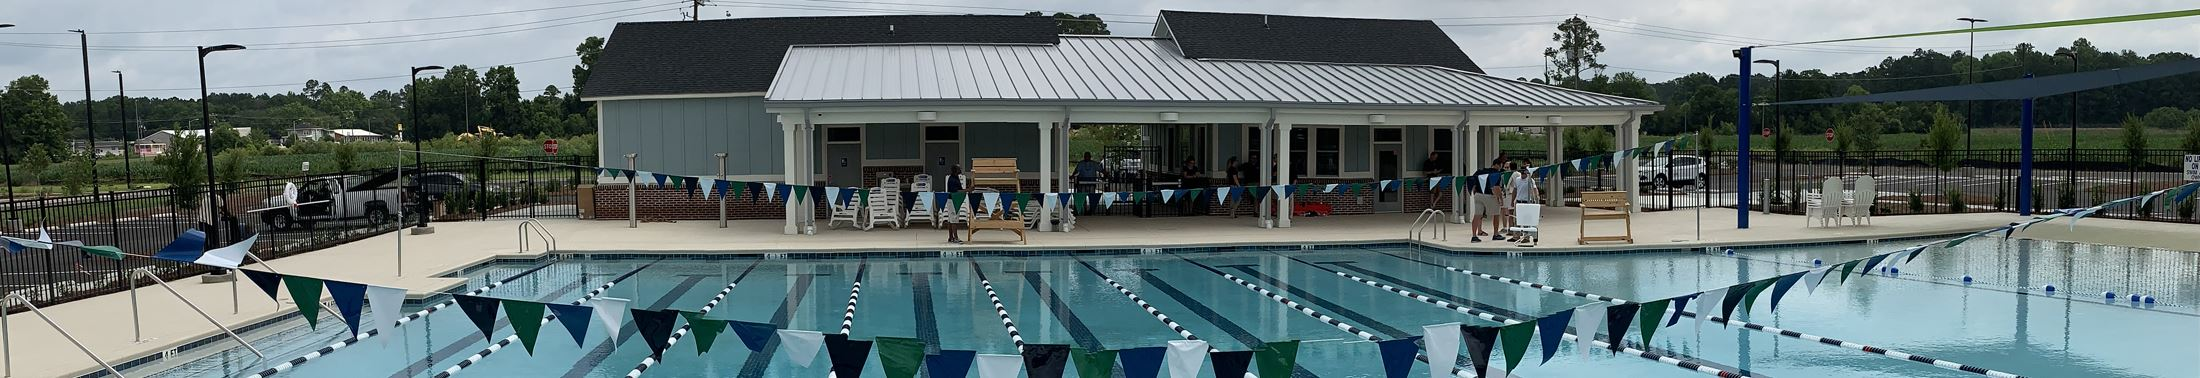 View of the empty pool at the West County Aquatic Center